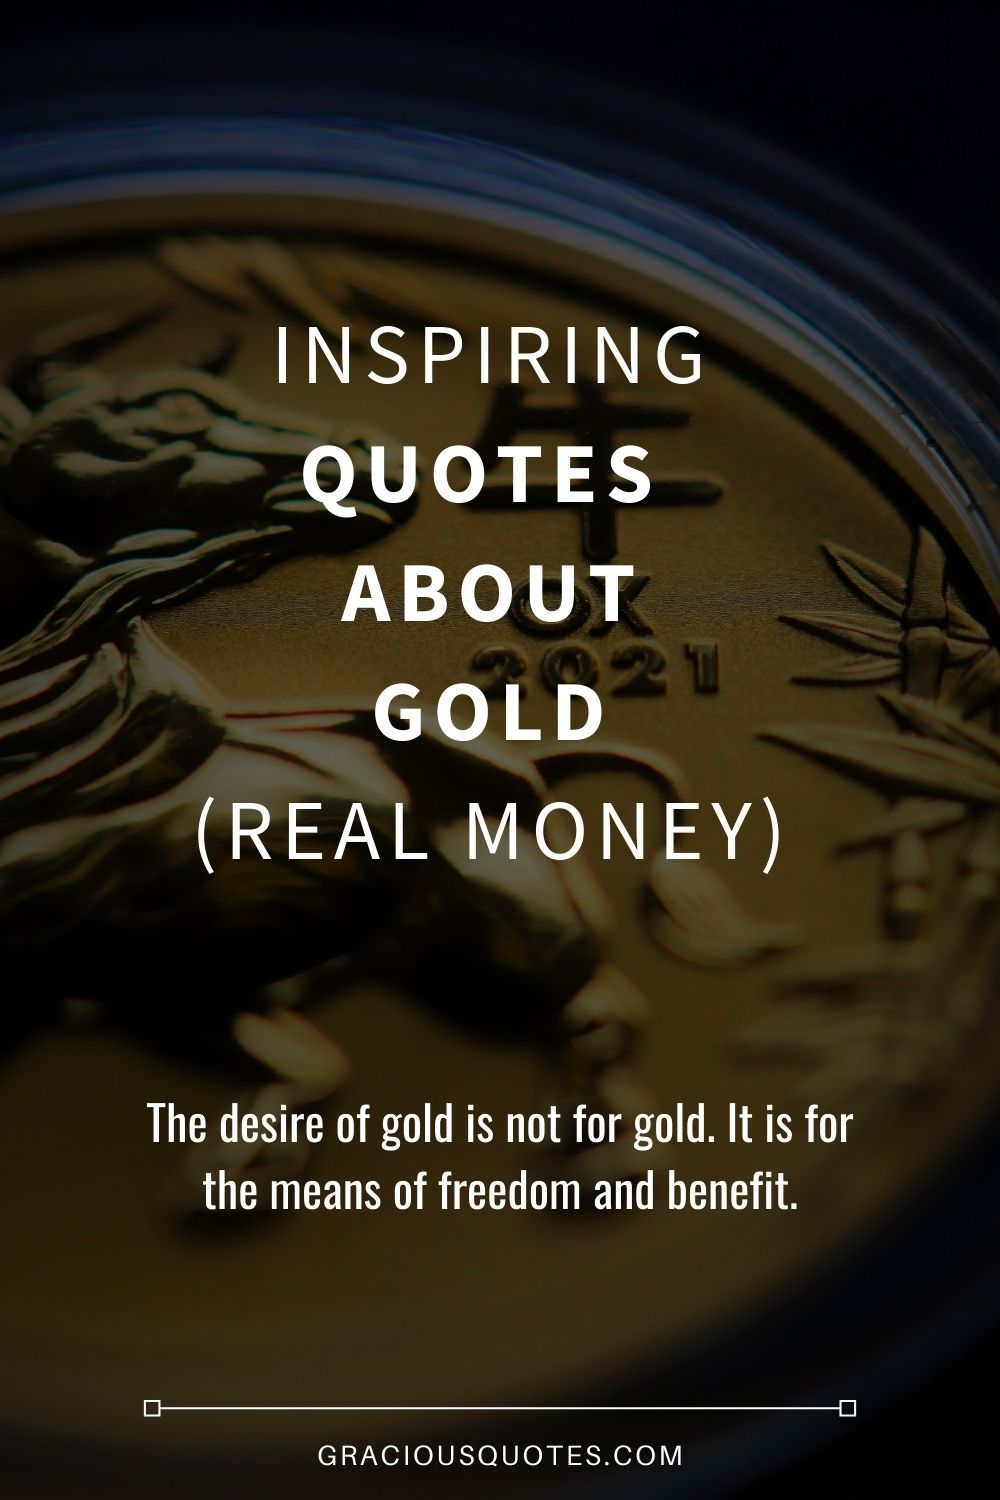 Inspiring Quotes About Gold (REAL MONEY) - Gracious Quotes